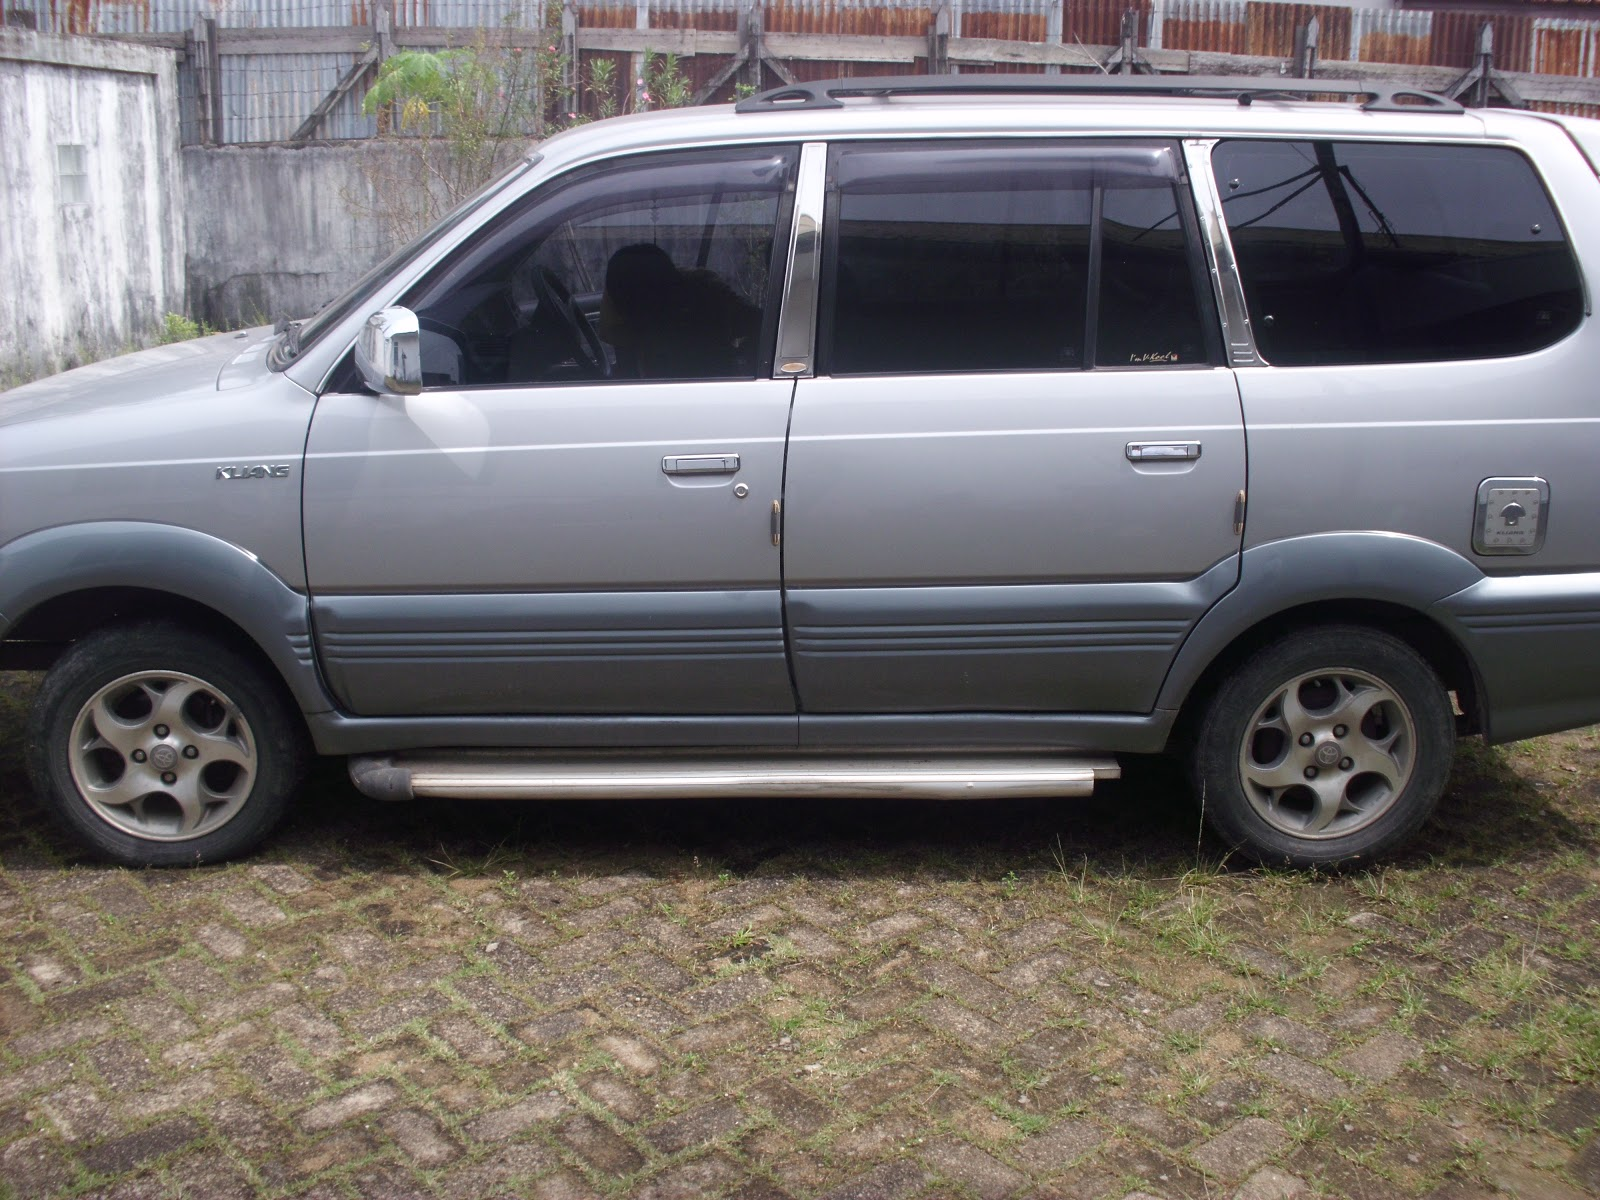 bursa mobil bekas pontianak toyota kijang krista 2002 manual silver metalik harga mobil rp. Black Bedroom Furniture Sets. Home Design Ideas